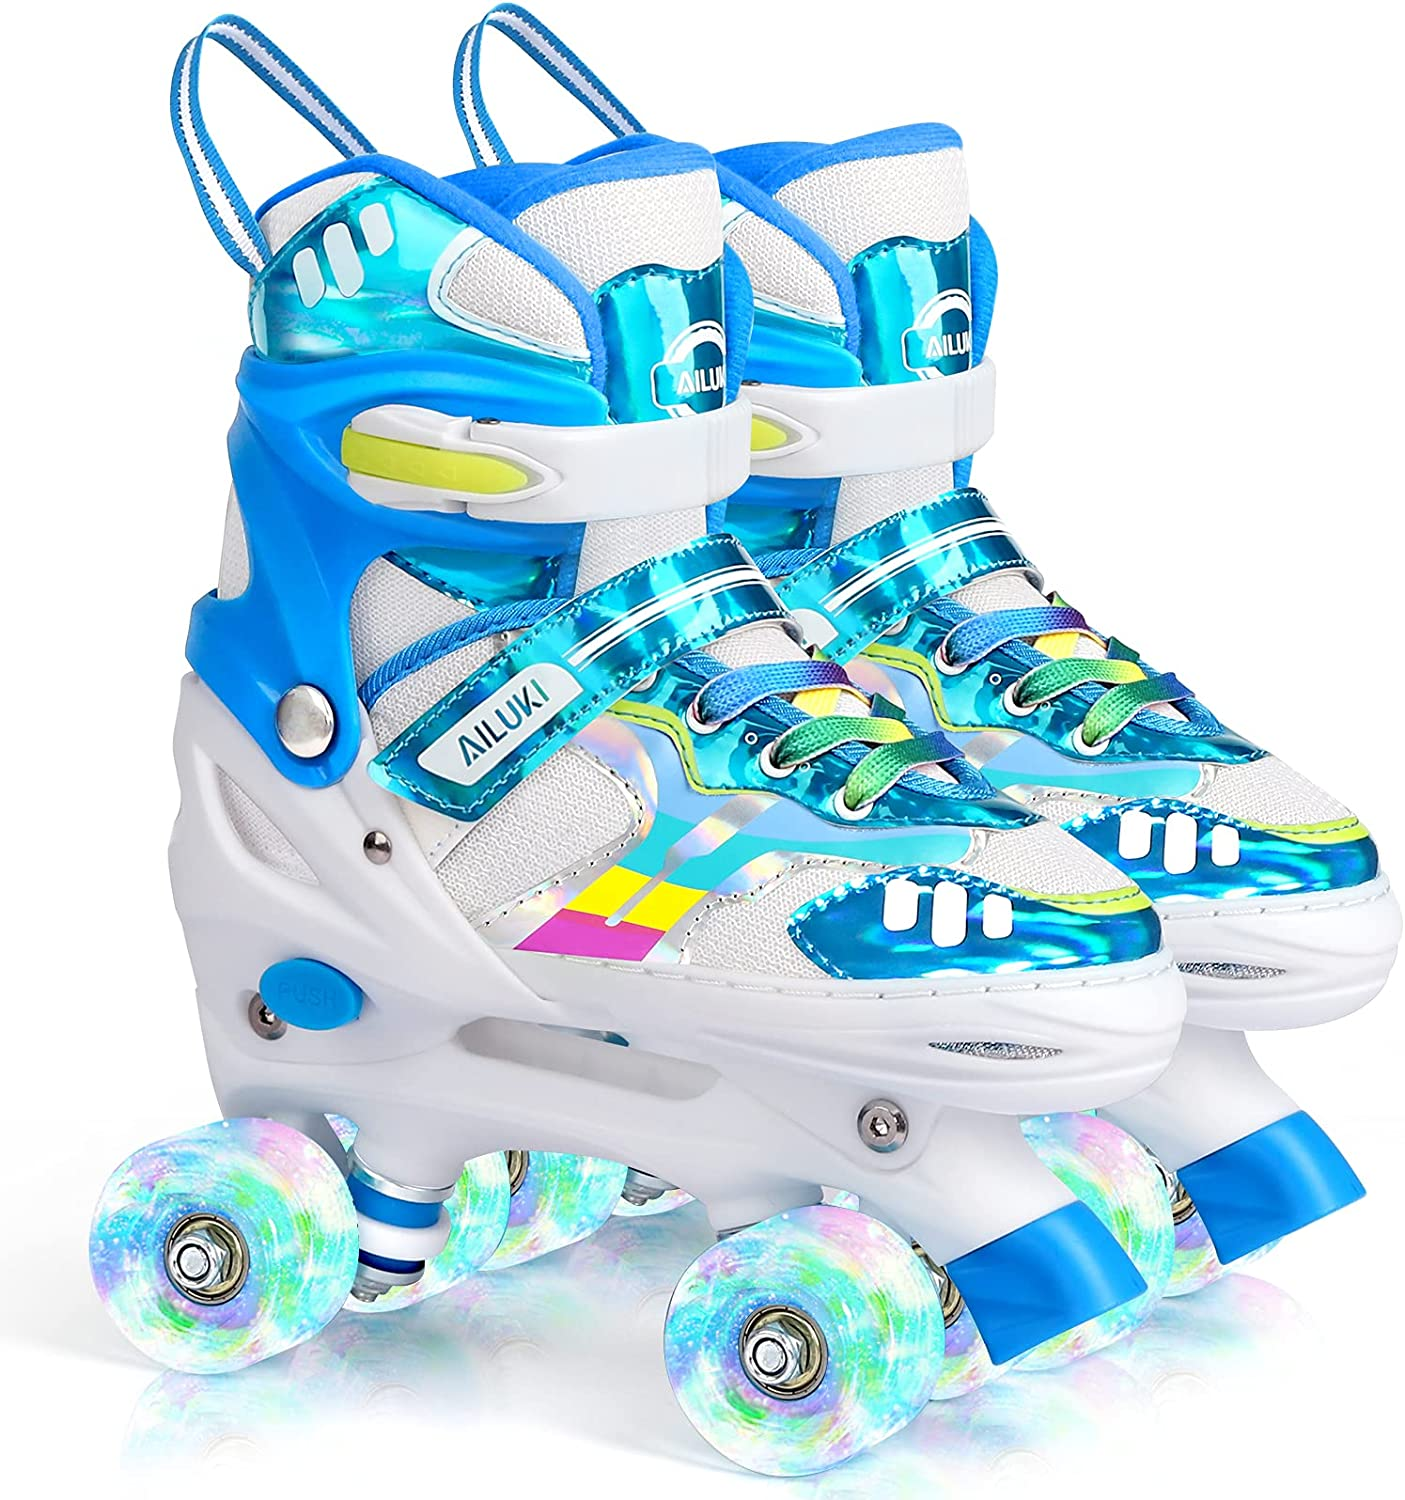 Sales results No. 1 Roller Skates for Girls and Boys Size Ultra-Cheap Deals Kids Adjustable Toddler 4